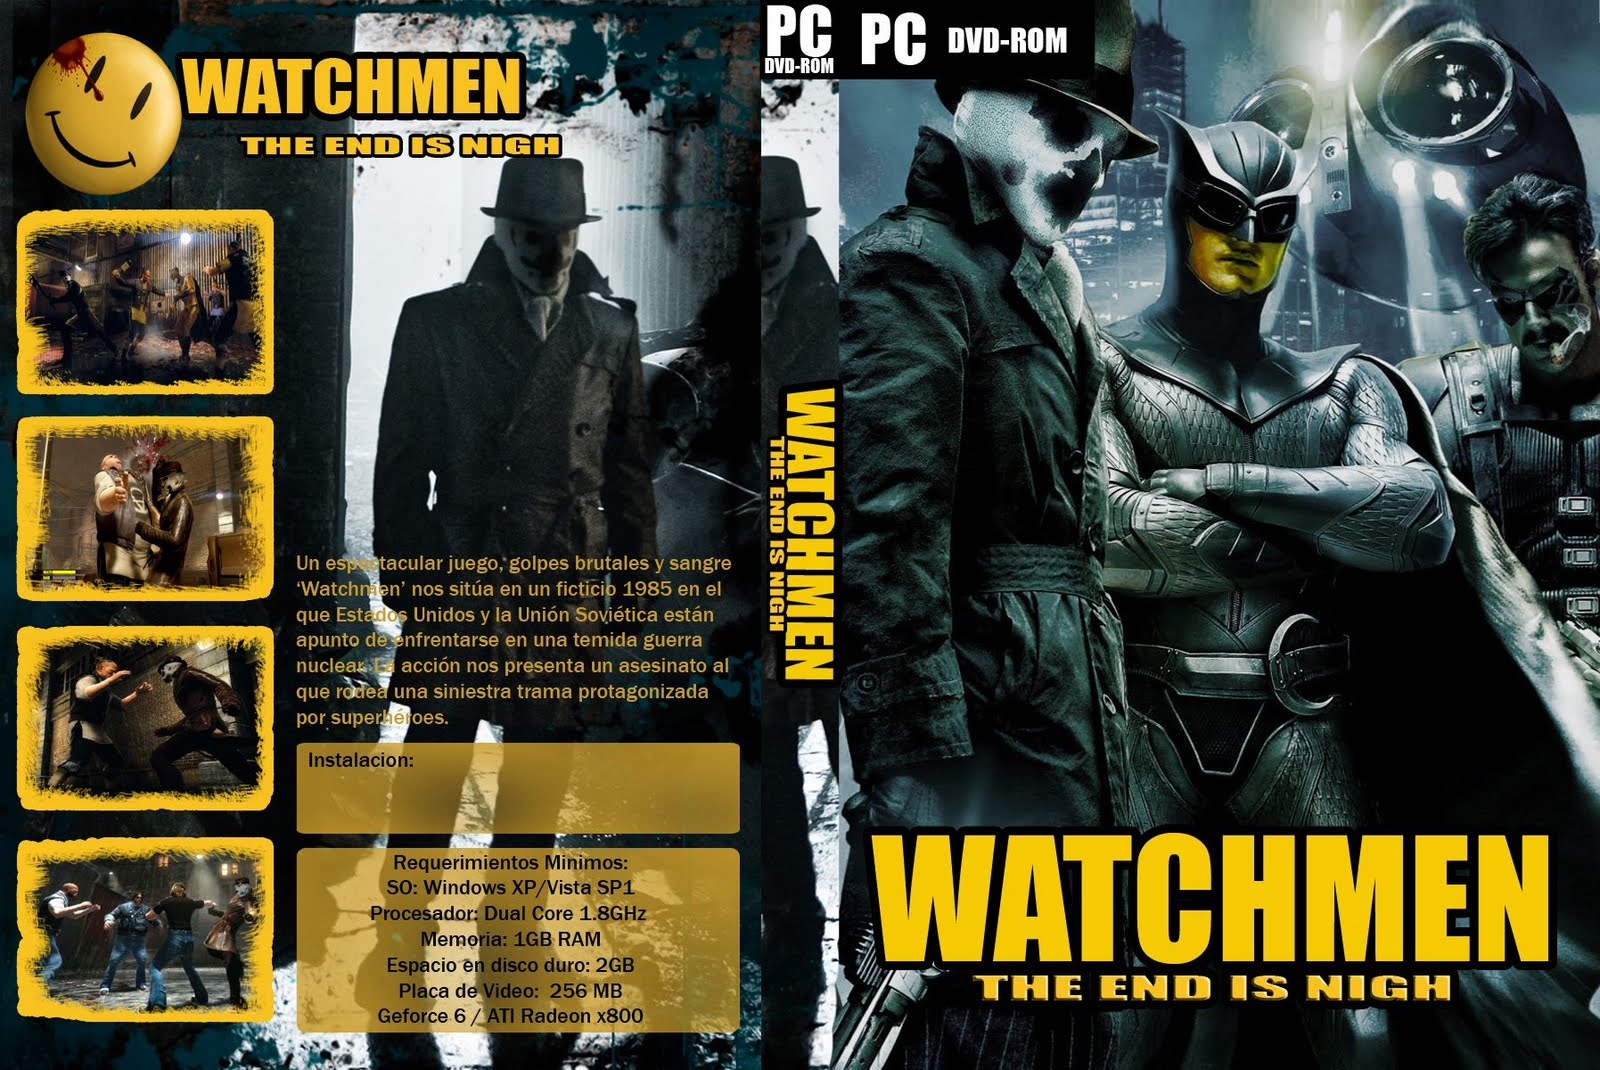 Watchmen the end is nigh cutscenes download